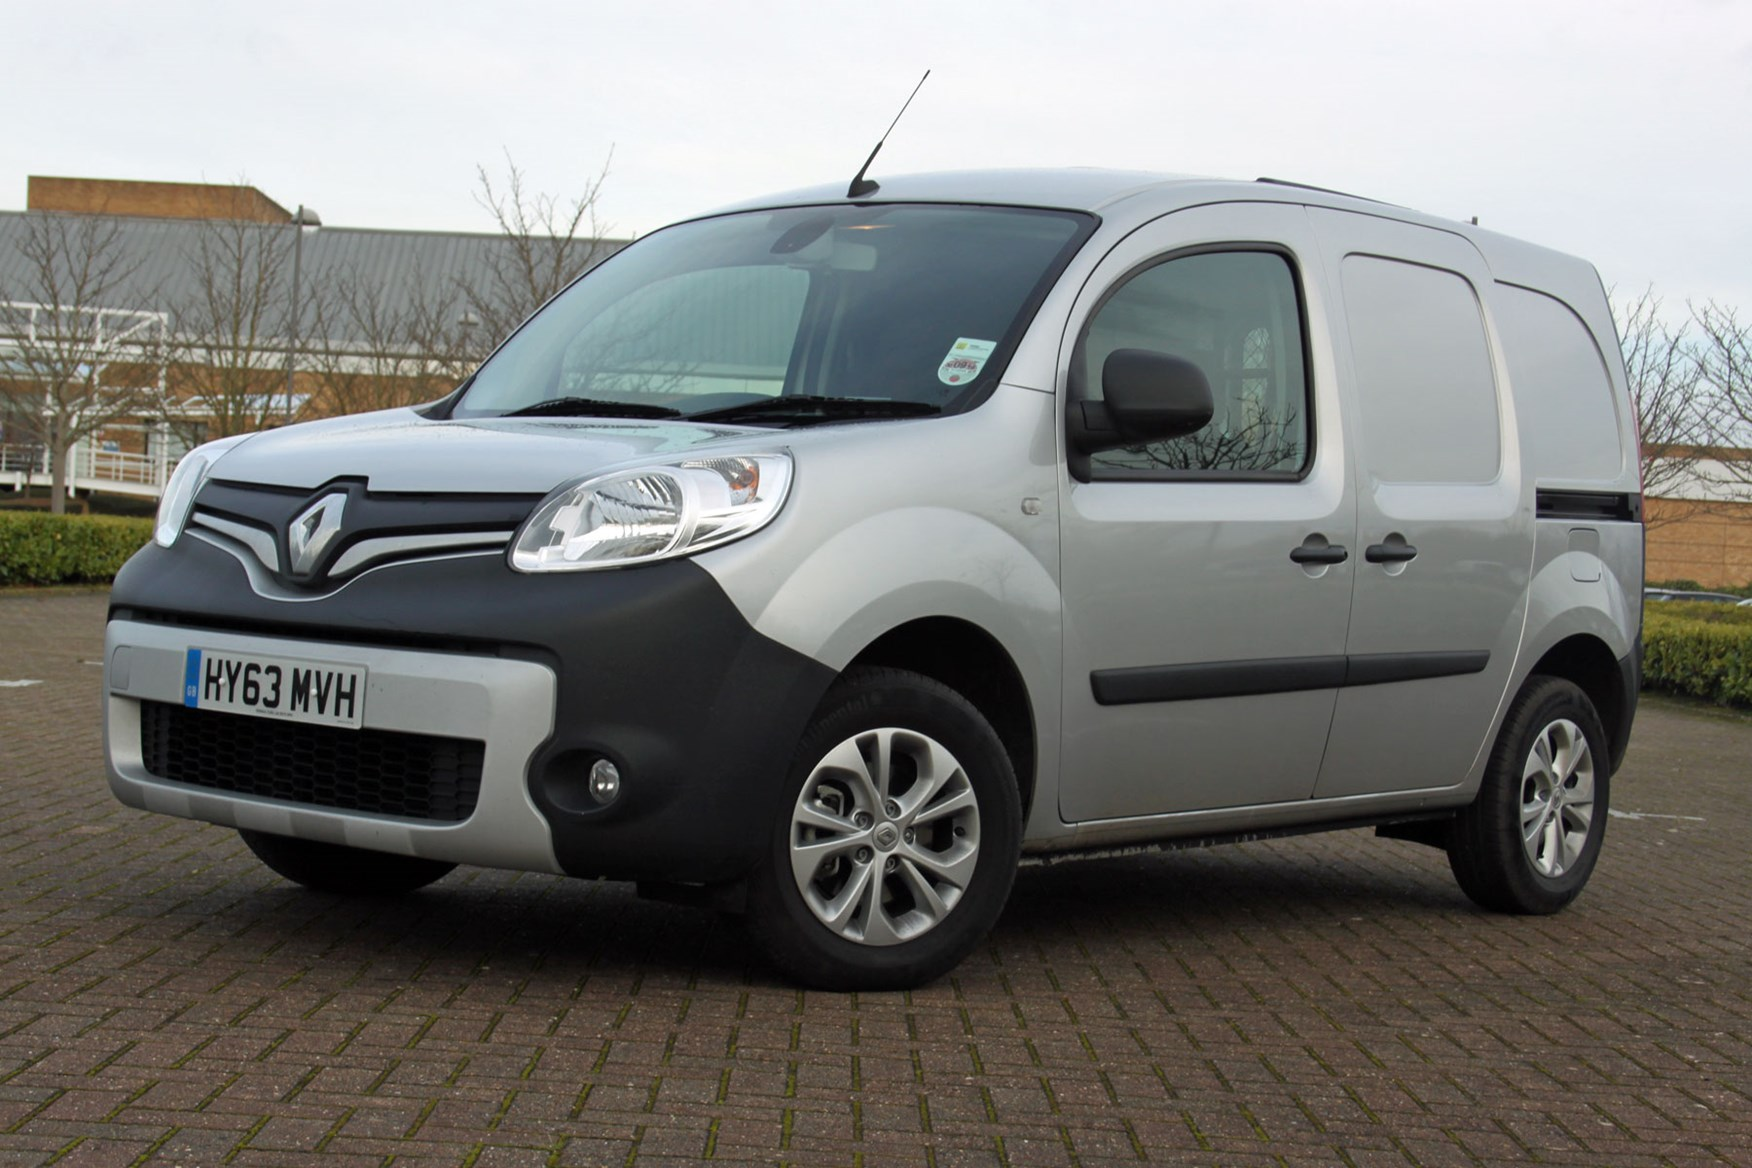 Renault Kangoo Sport review - front view, silver